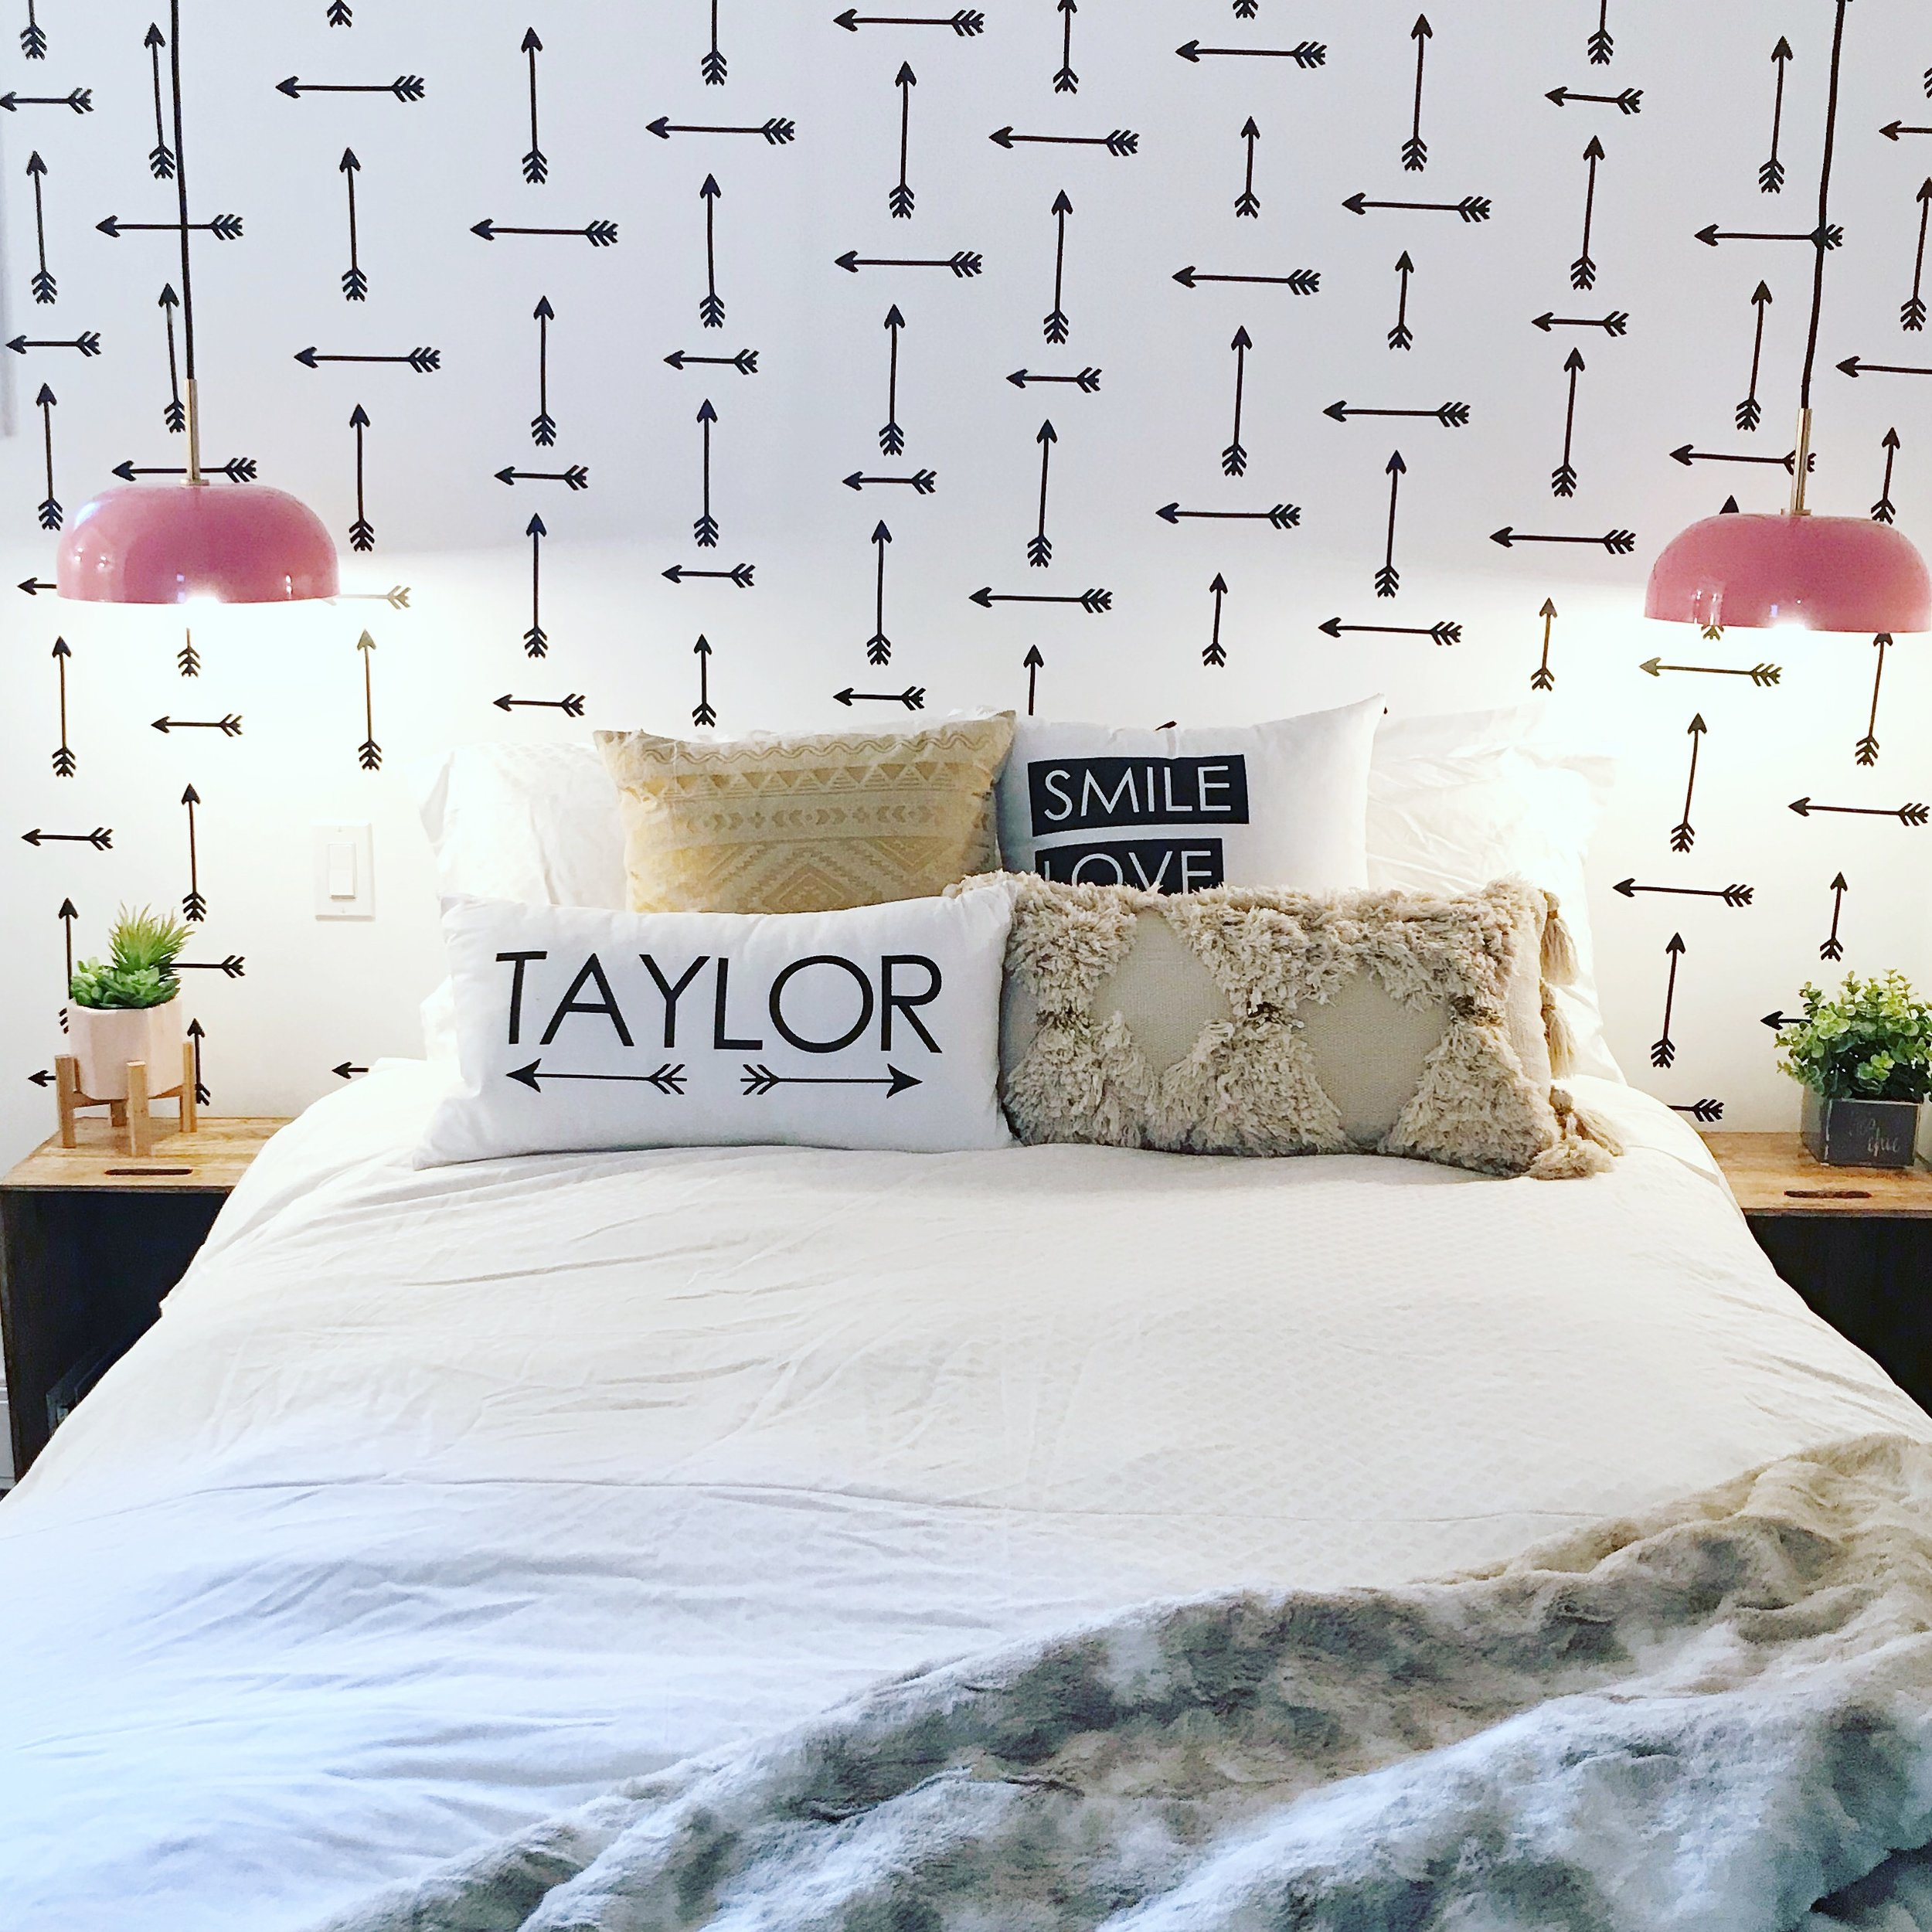 TEEN BOHO BEDROOM - FROM BARNEY PURPLE TO WHITE AND BRIGHT